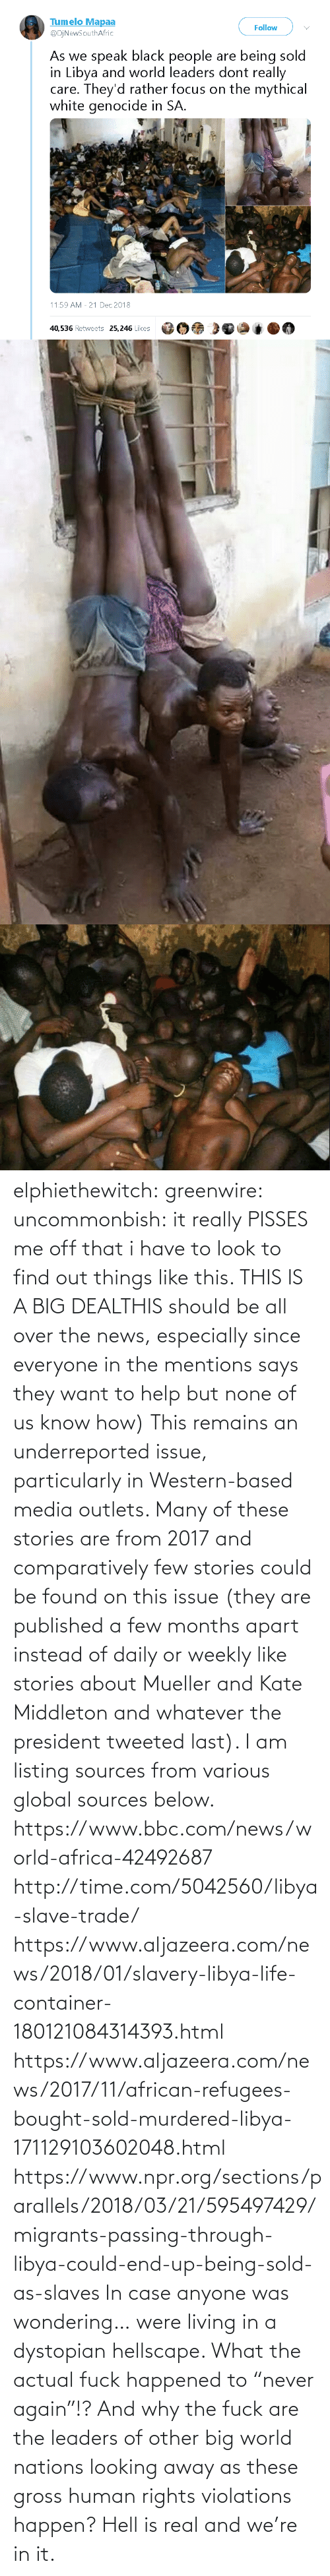 "Instead Of: elphiethewitch: greenwire:  uncommonbish:  it really PISSES me off that i have to look to find out things like this. THIS IS A BIG DEALTHIS should be all over the news, especially since everyone in the mentions says they want to help but none of us know how)  This remains an underreported issue, particularly in Western-based media outlets. Many of these stories are from 2017 and comparatively few stories could be found on this issue (they are published a few months apart instead of daily or weekly like stories about Mueller and Kate Middleton and whatever the president tweeted last). I am listing sources from various global sources below.  https://www.bbc.com/news/world-africa-42492687 http://time.com/5042560/libya-slave-trade/ https://www.aljazeera.com/news/2018/01/slavery-libya-life-container-180121084314393.html https://www.aljazeera.com/news/2017/11/african-refugees-bought-sold-murdered-libya-171129103602048.html https://www.npr.org/sections/parallels/2018/03/21/595497429/migrants-passing-through-libya-could-end-up-being-sold-as-slaves   In case anyone was wondering… were living in a dystopian hellscape.  What the actual fuck happened to ""never again""!? And why the fuck are the leaders of other big world nations looking away as these gross human rights violations happen?  Hell is real and we're in it."